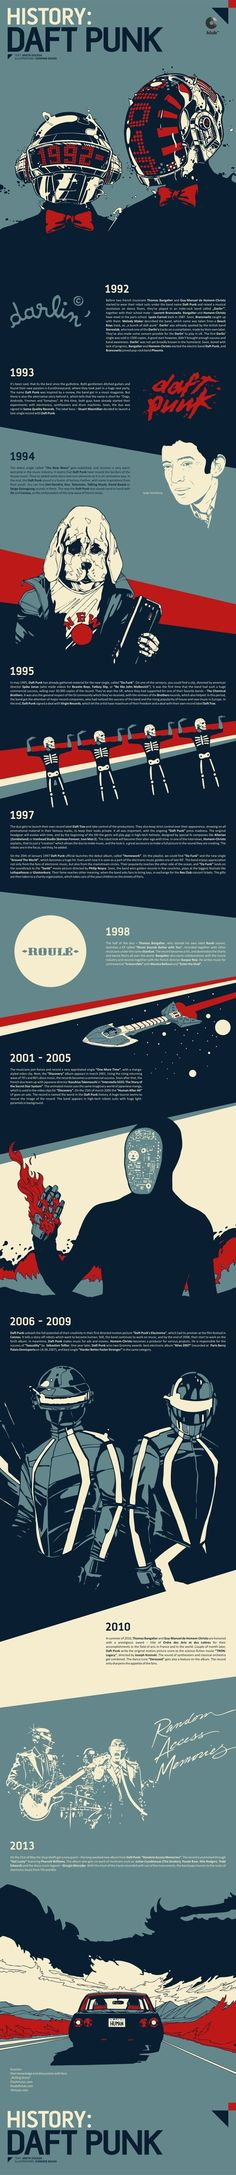 Unique Infographic Design, History Of Daft Punk #Infographic #Design…